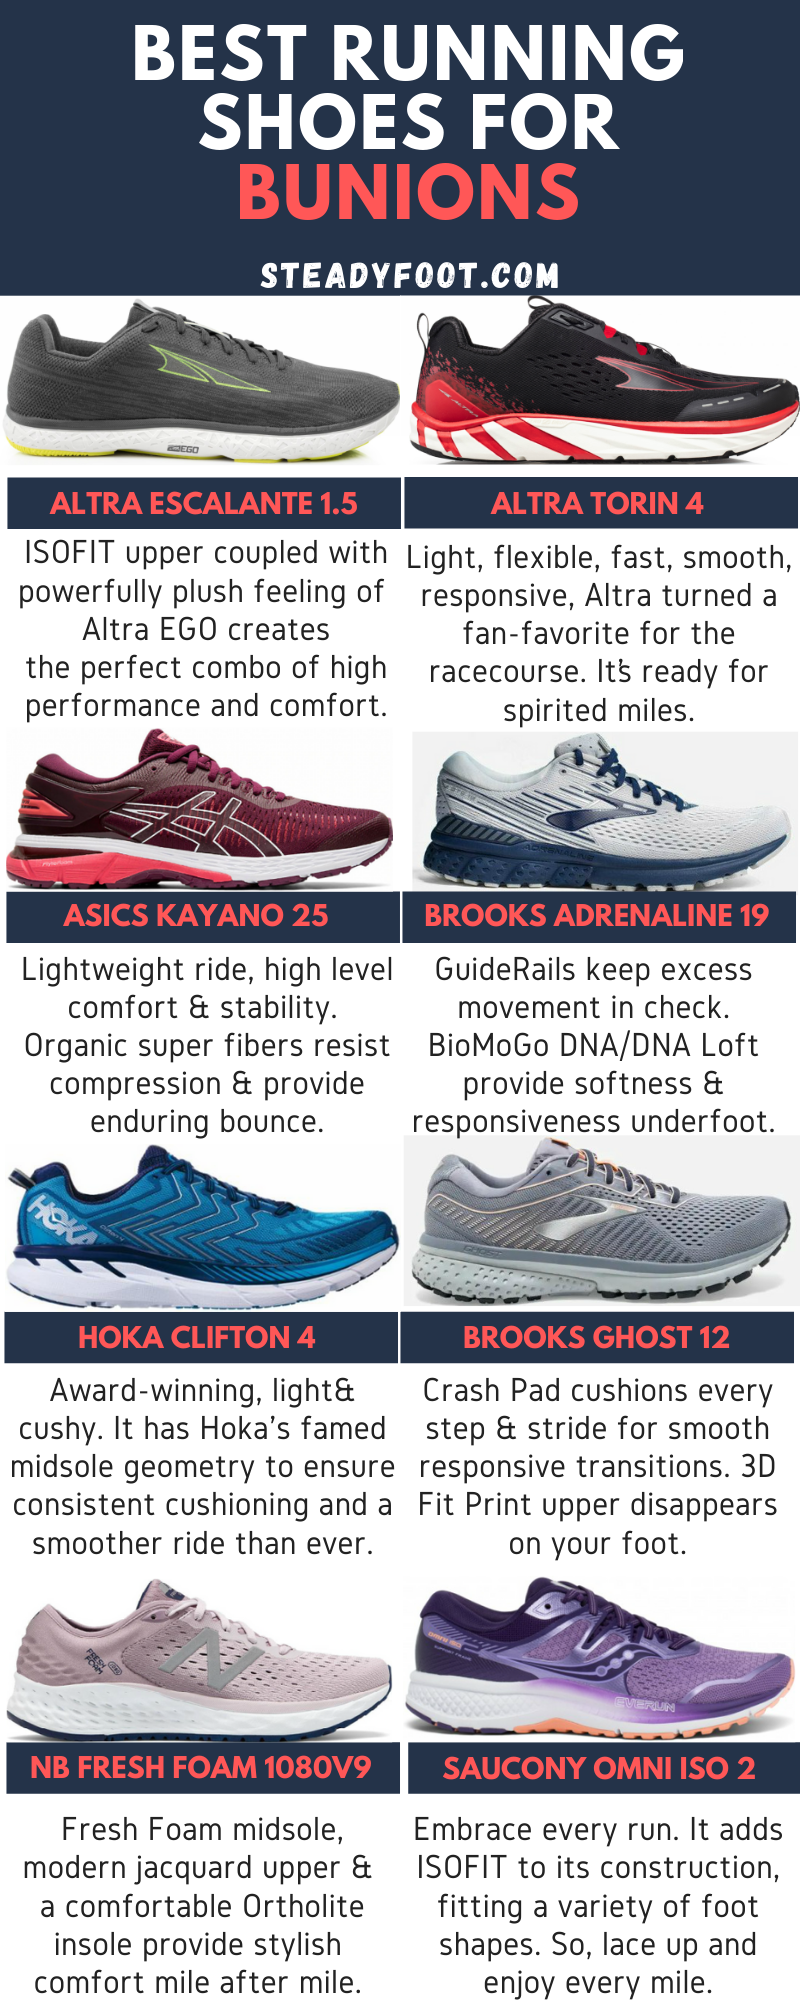 Best Running Shoes for Bunions in 2020